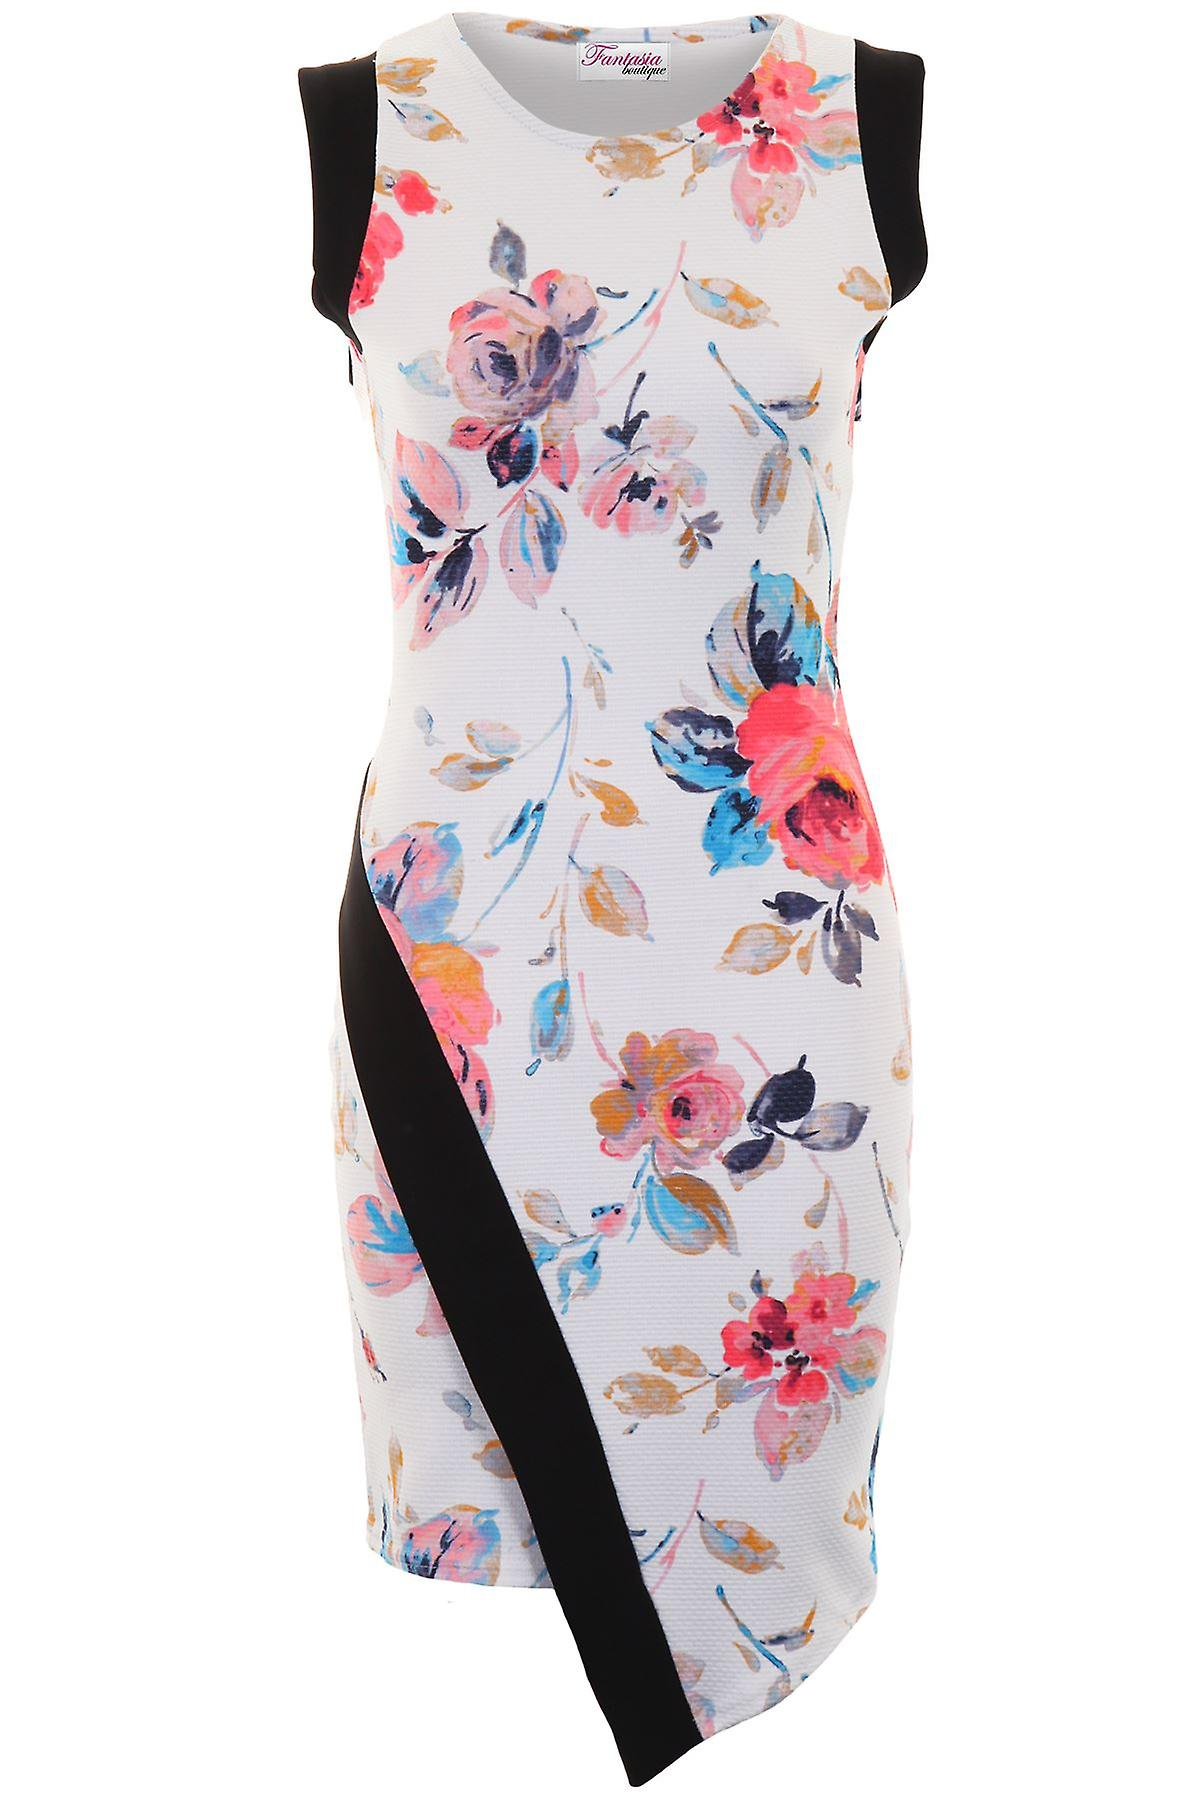 Ladies Sleeveless Asymmetric Floral Print Panel Textured Wrap Bodycon Dress